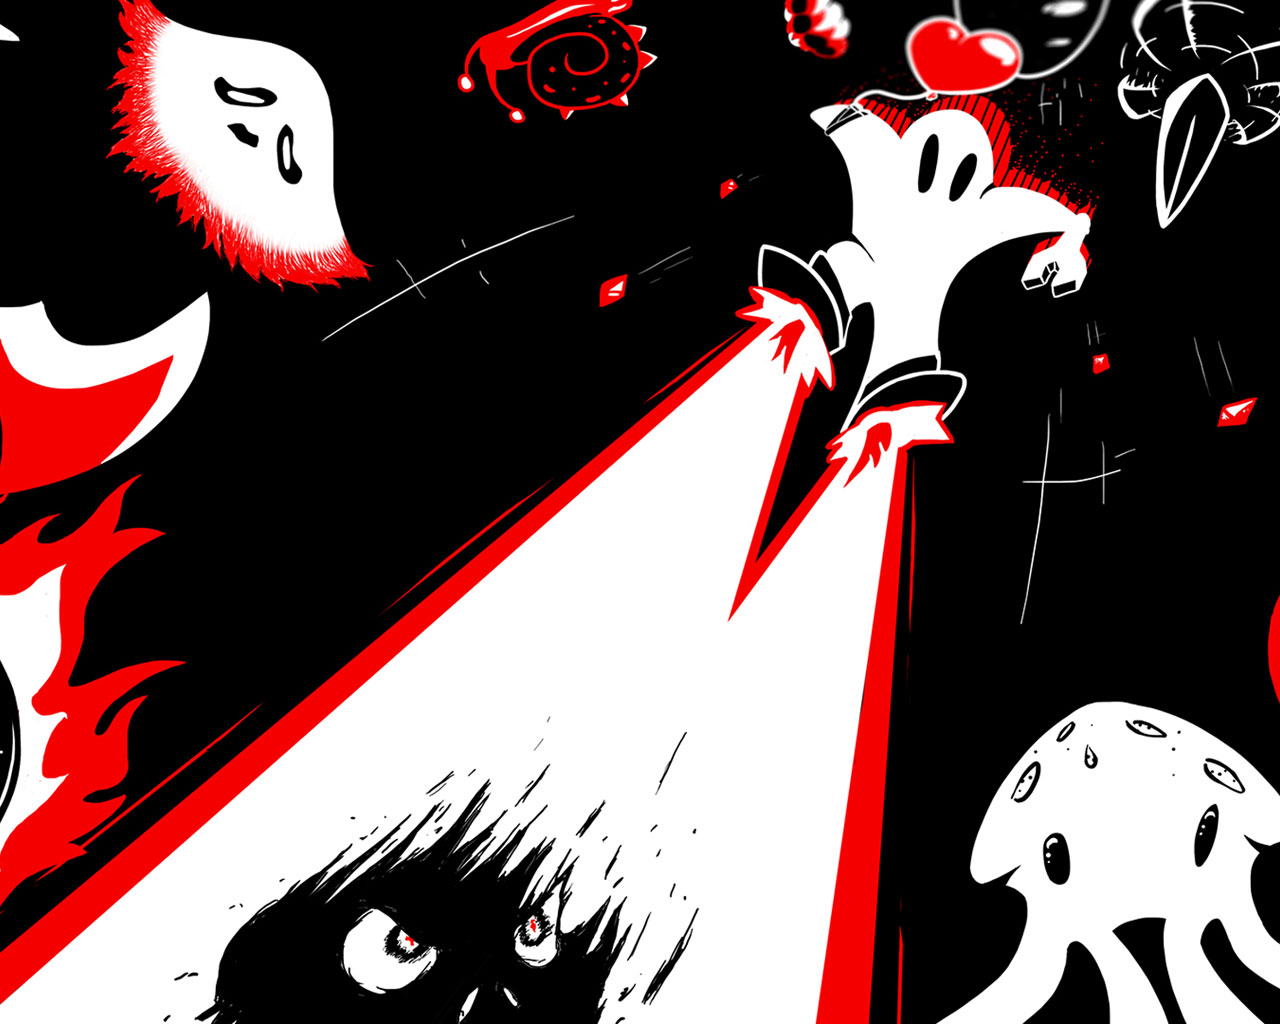 Free Downwell Wallpaper in 1280x1024